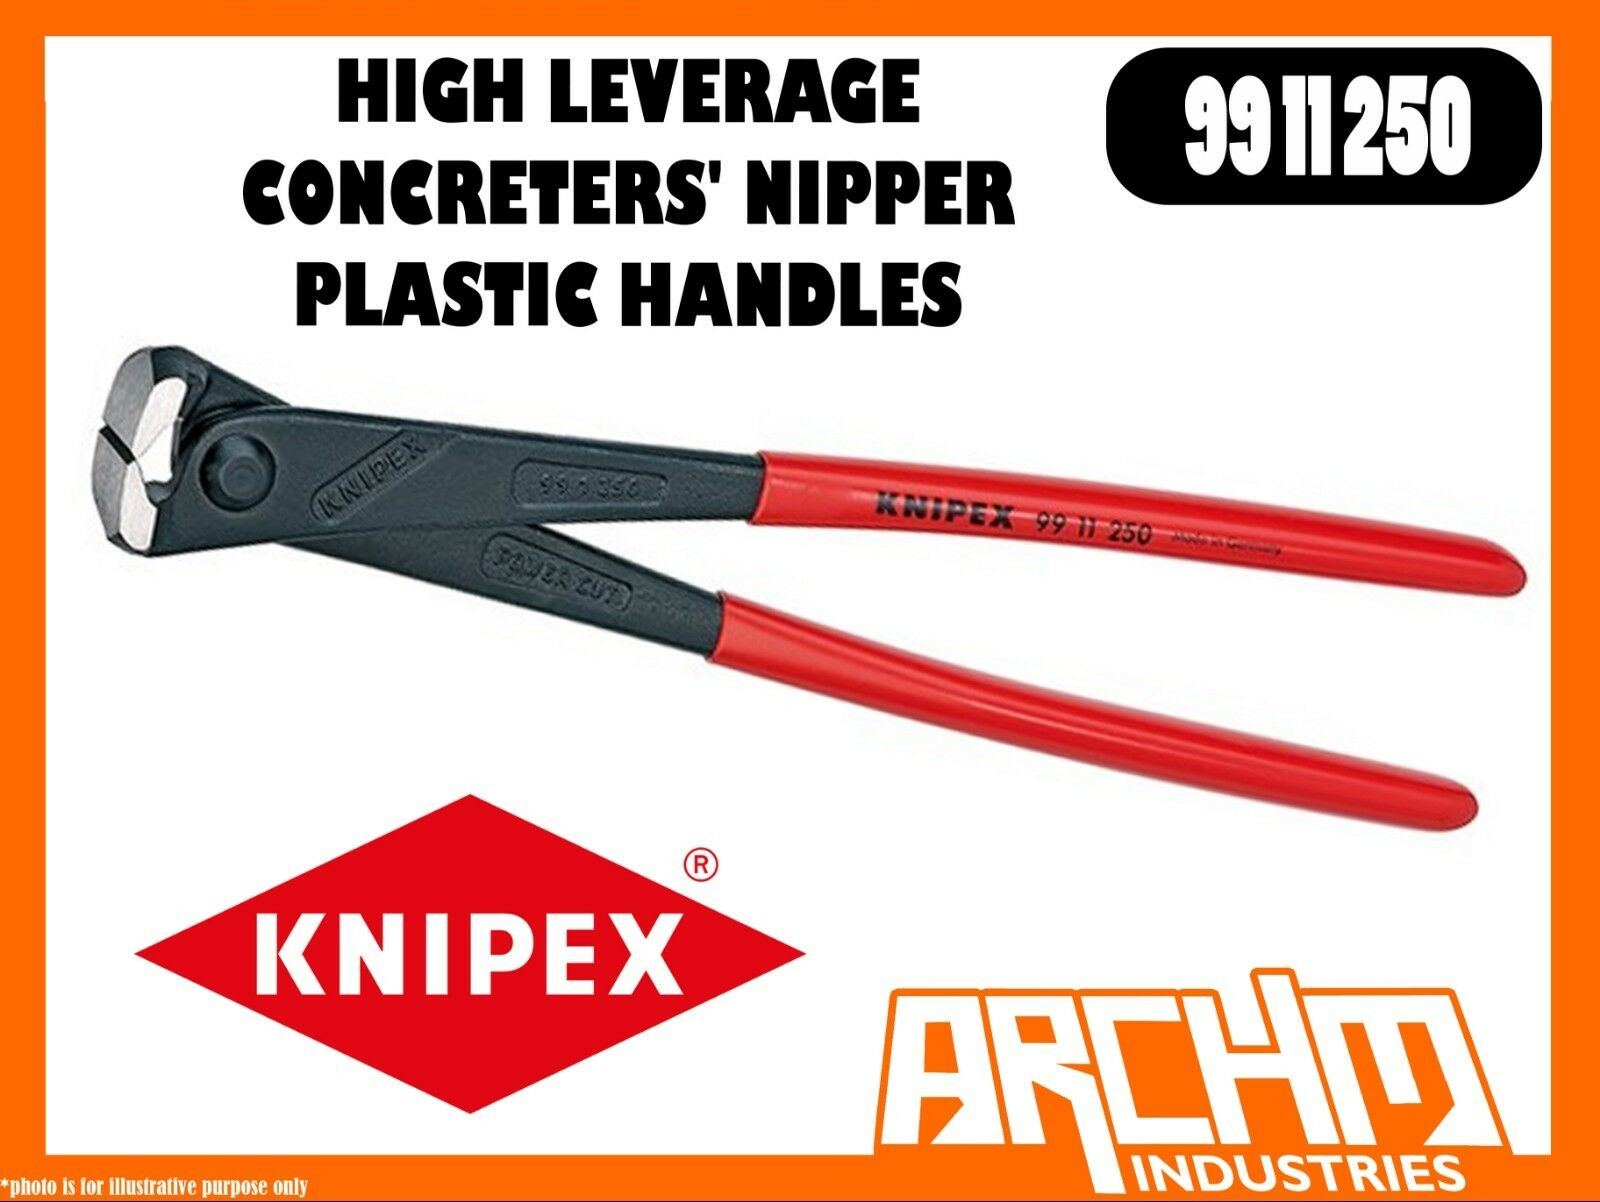 KNIPEX 9911250 - HIGH LEVERAGE CONCRETERS' NIPPER - PLASTIC HANDLES - 250MM